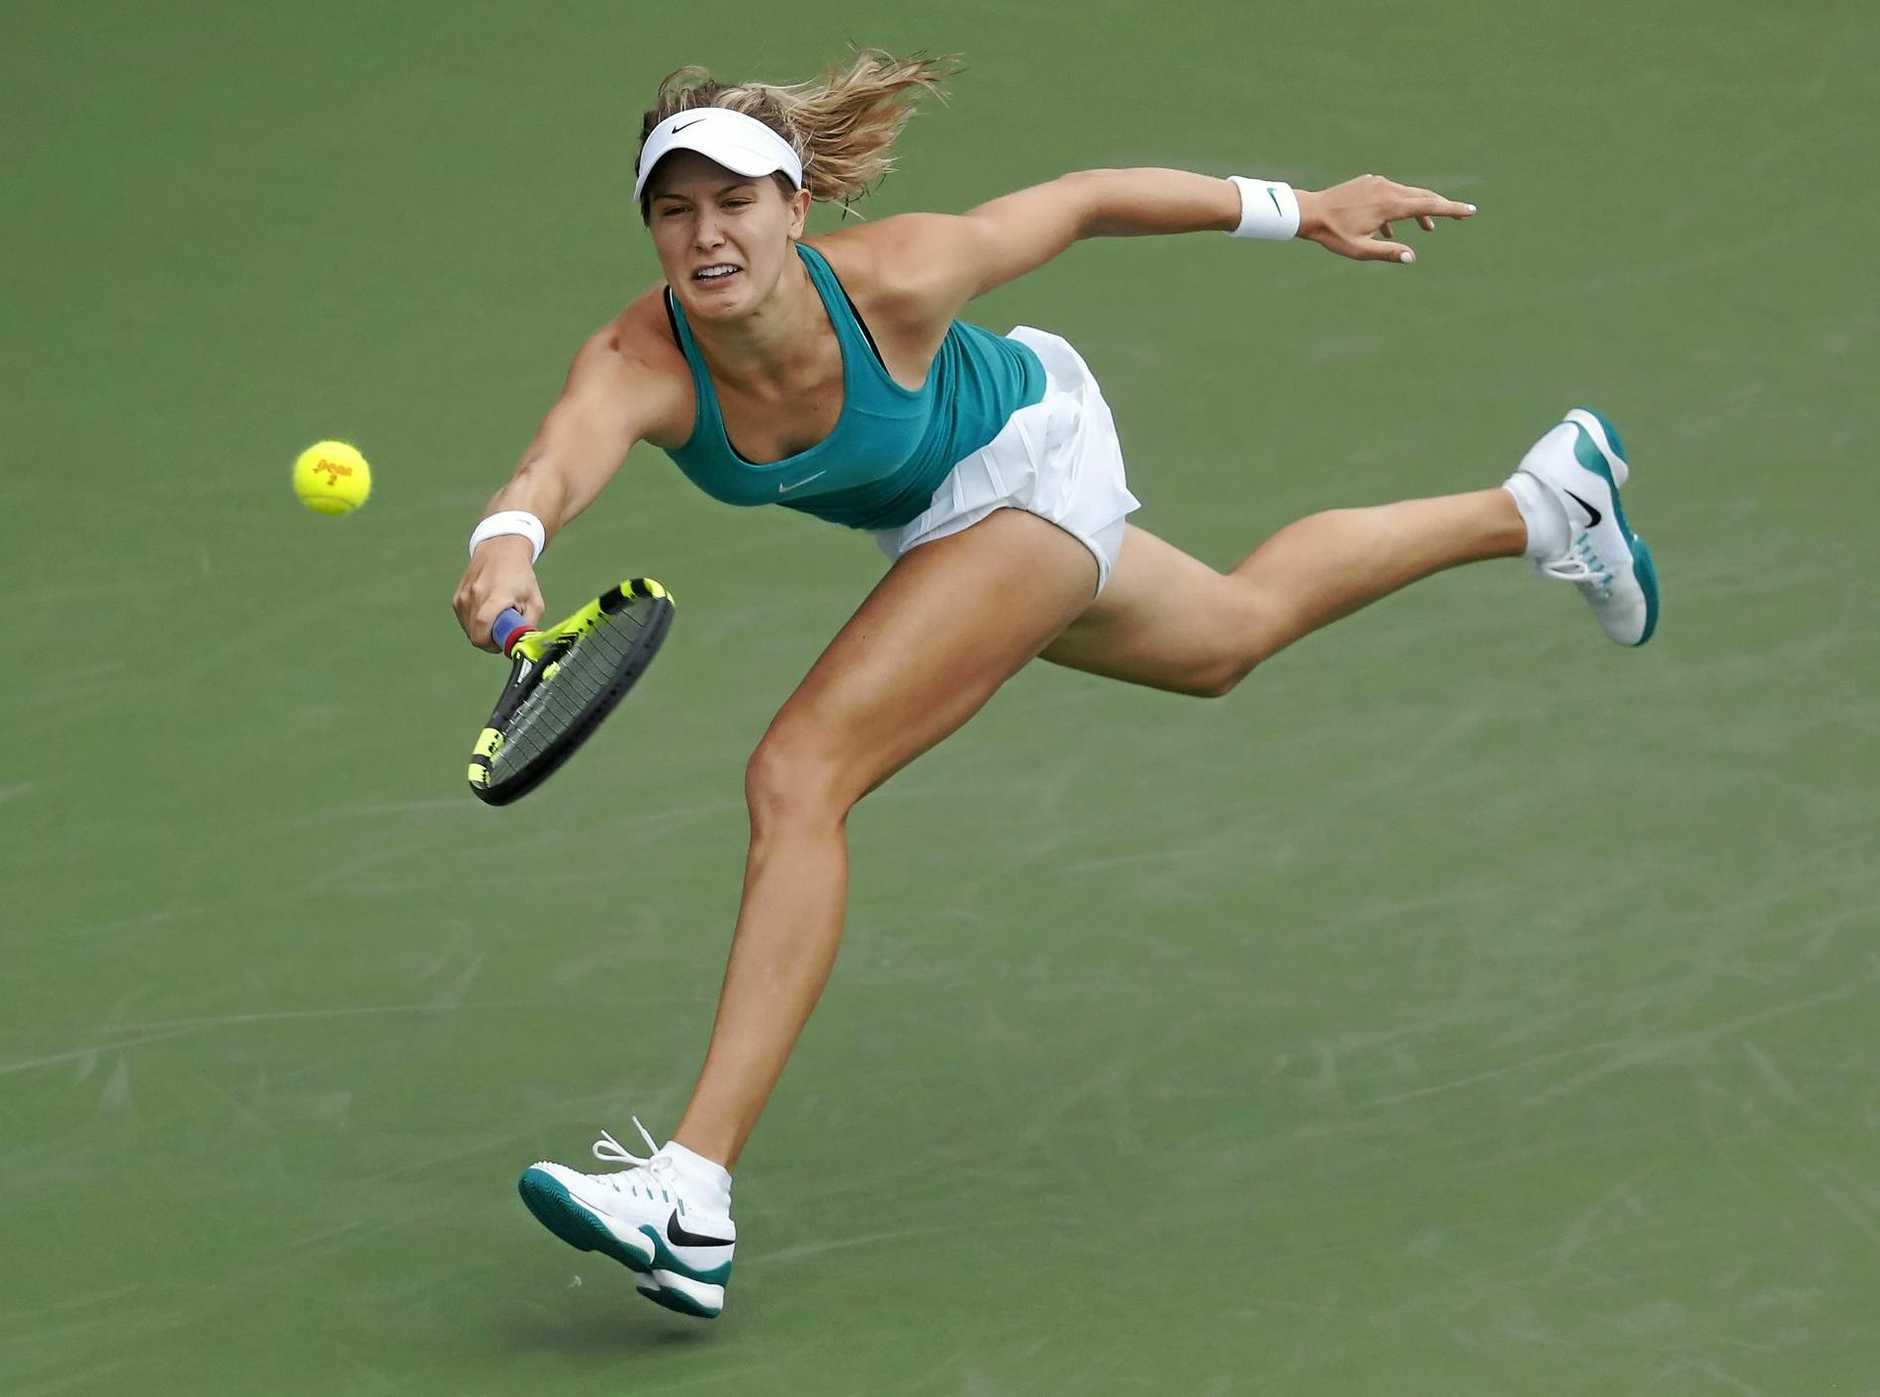 Eugenie Bouchard of Canada in action.